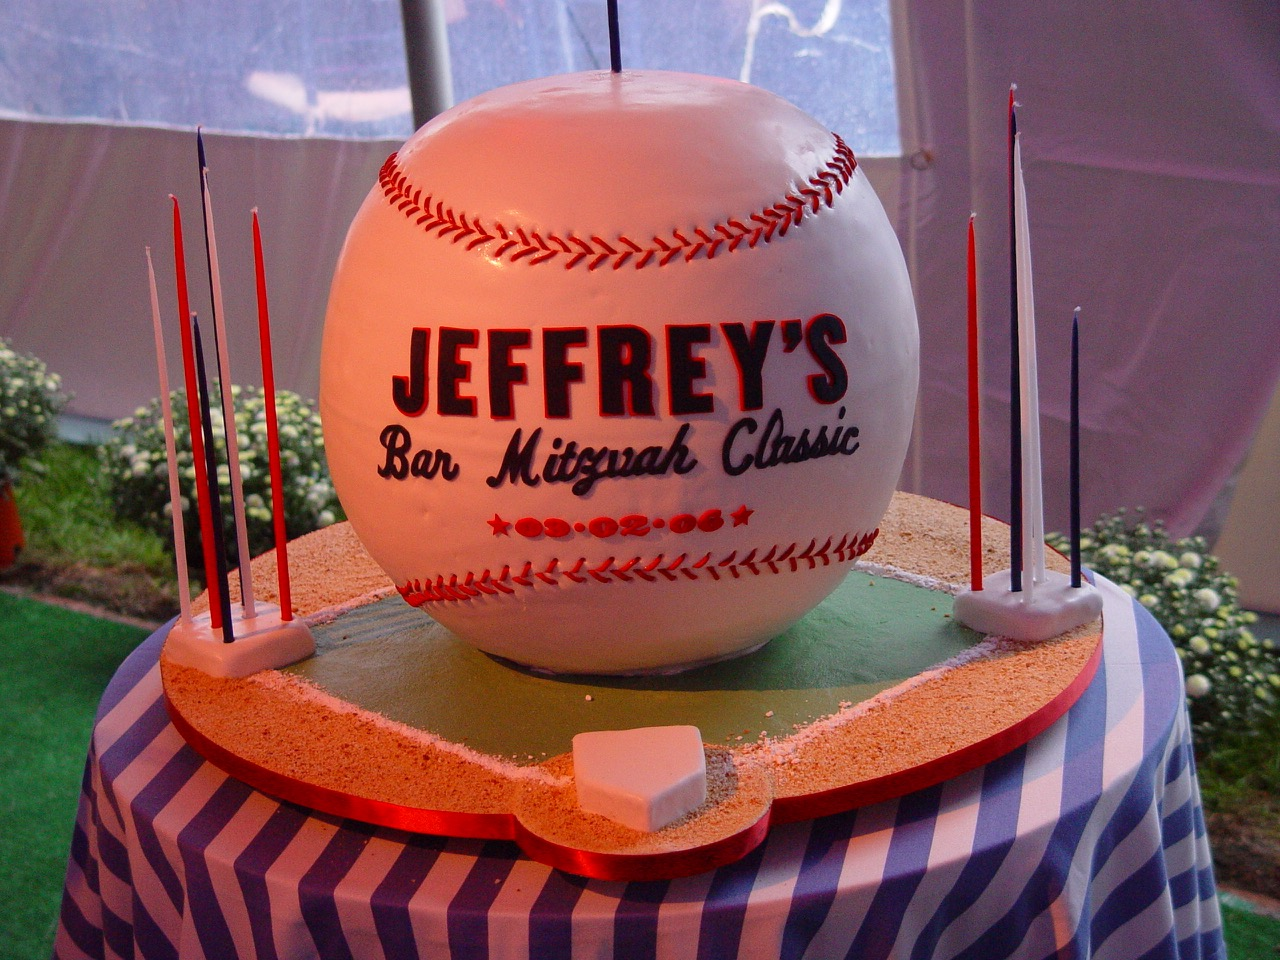 Sports Theme Centerpieces Decor and Lighting by Eggsotic Events NJ Event Design and Decor Rental  - 3.jpg